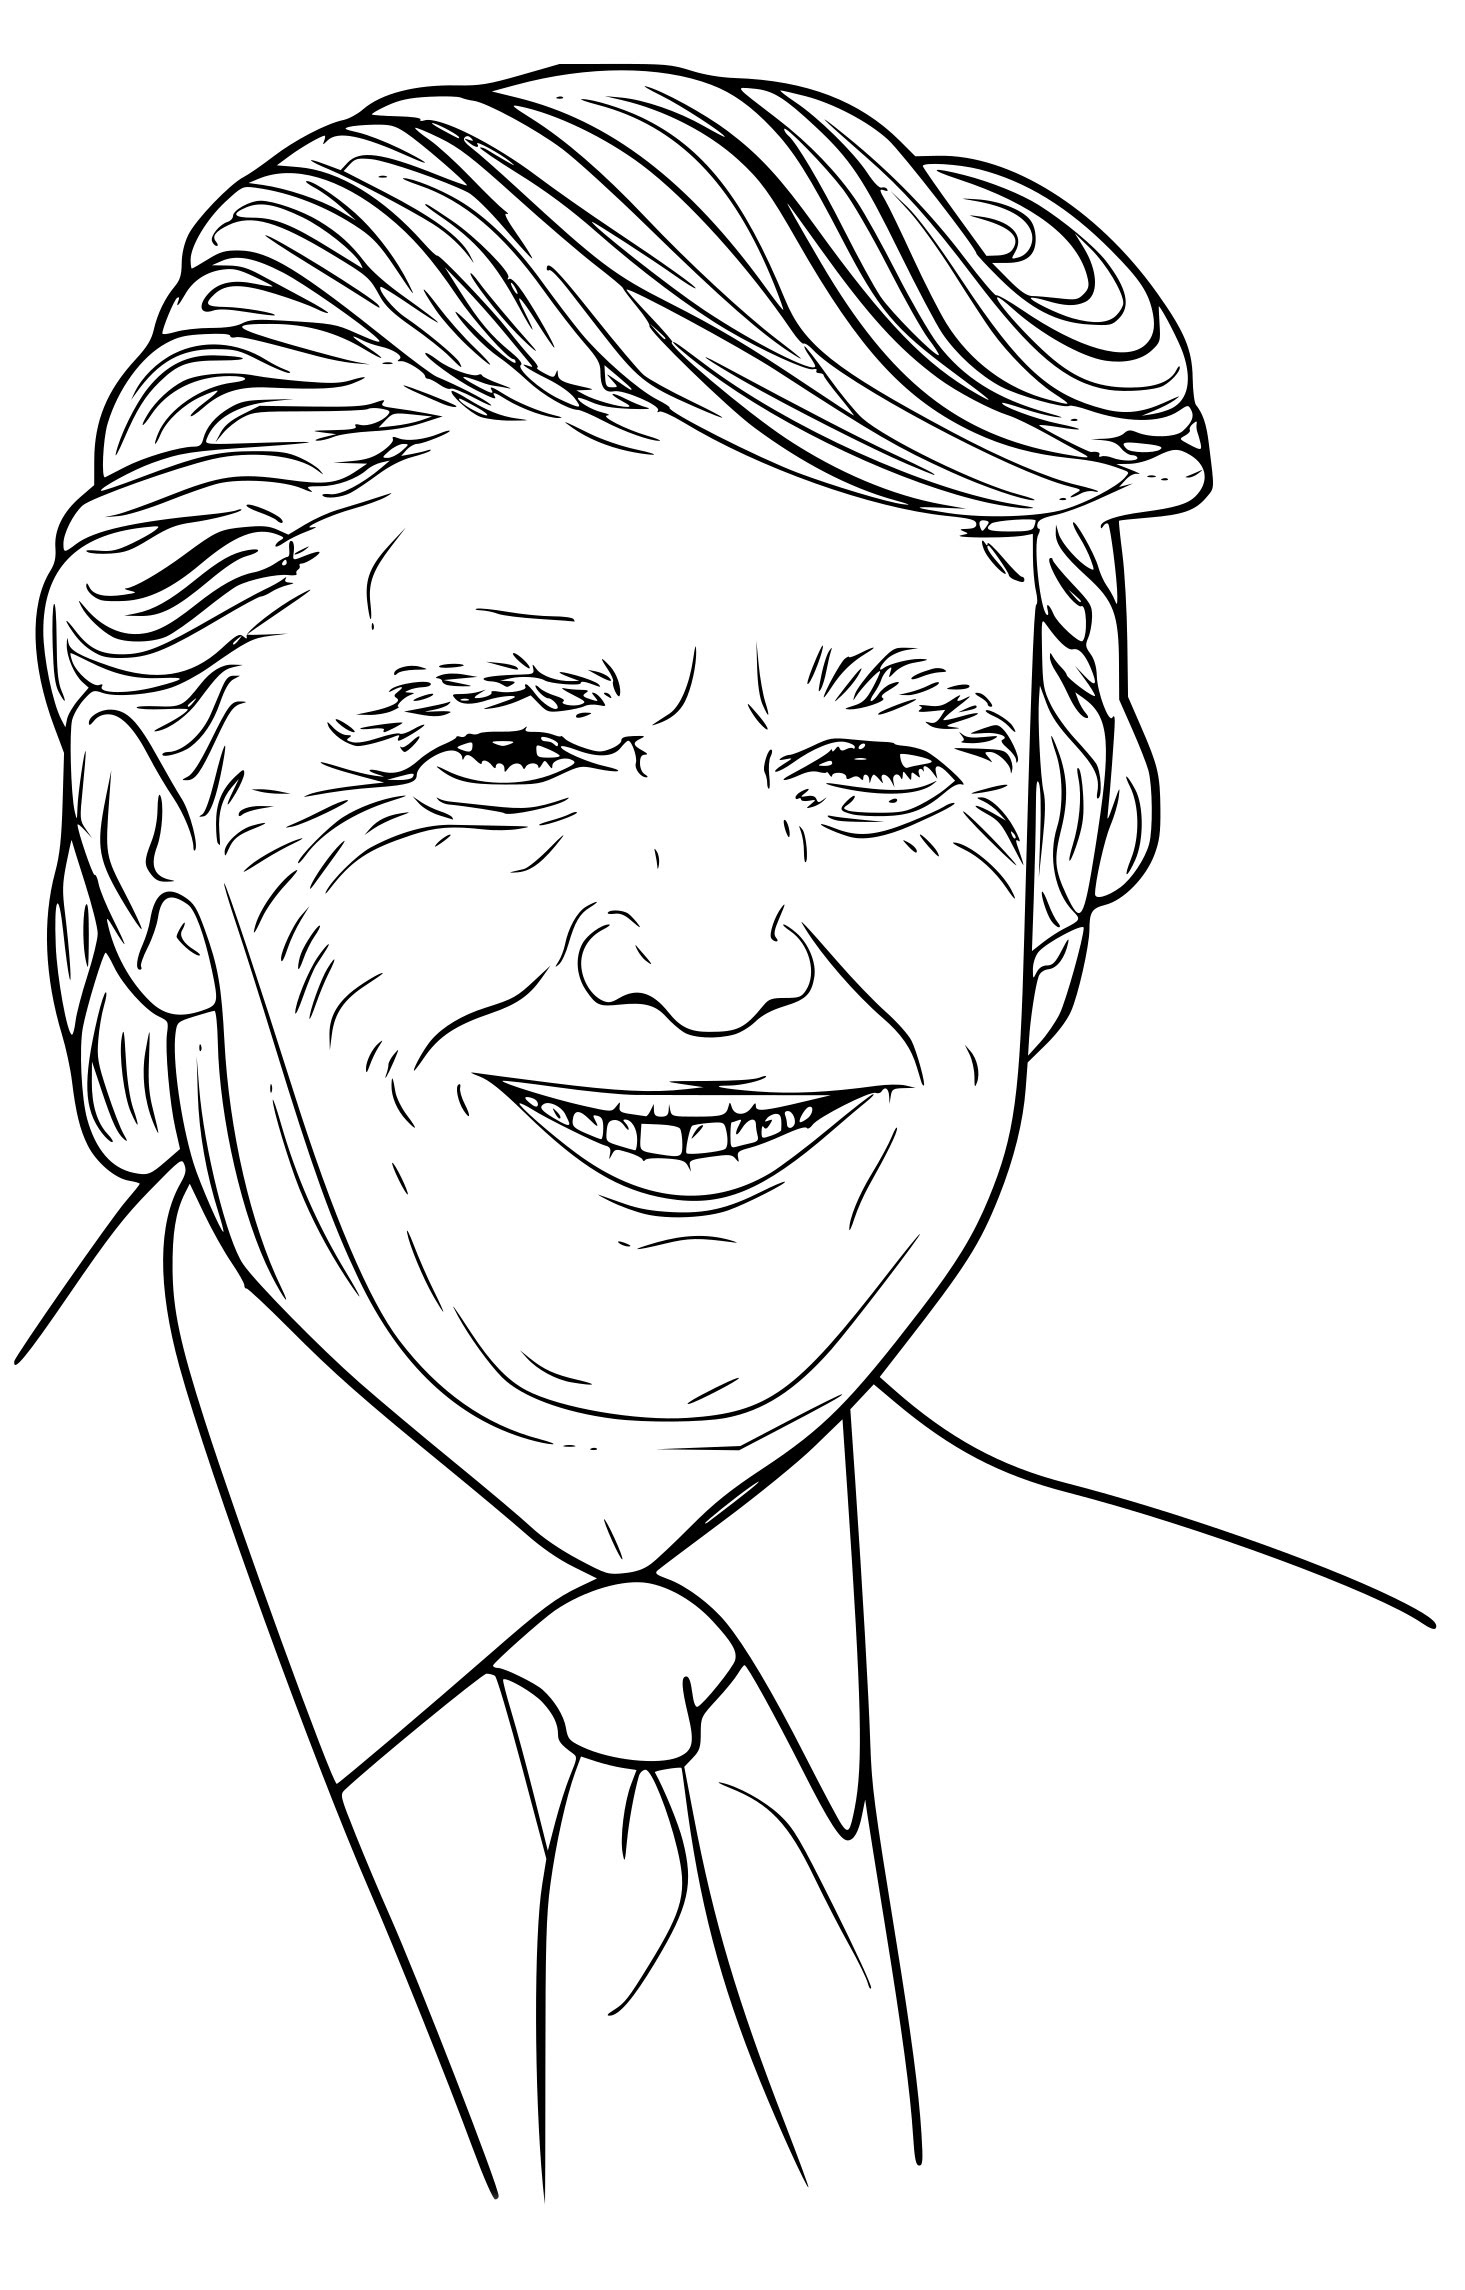 coloriagedonaldtrump